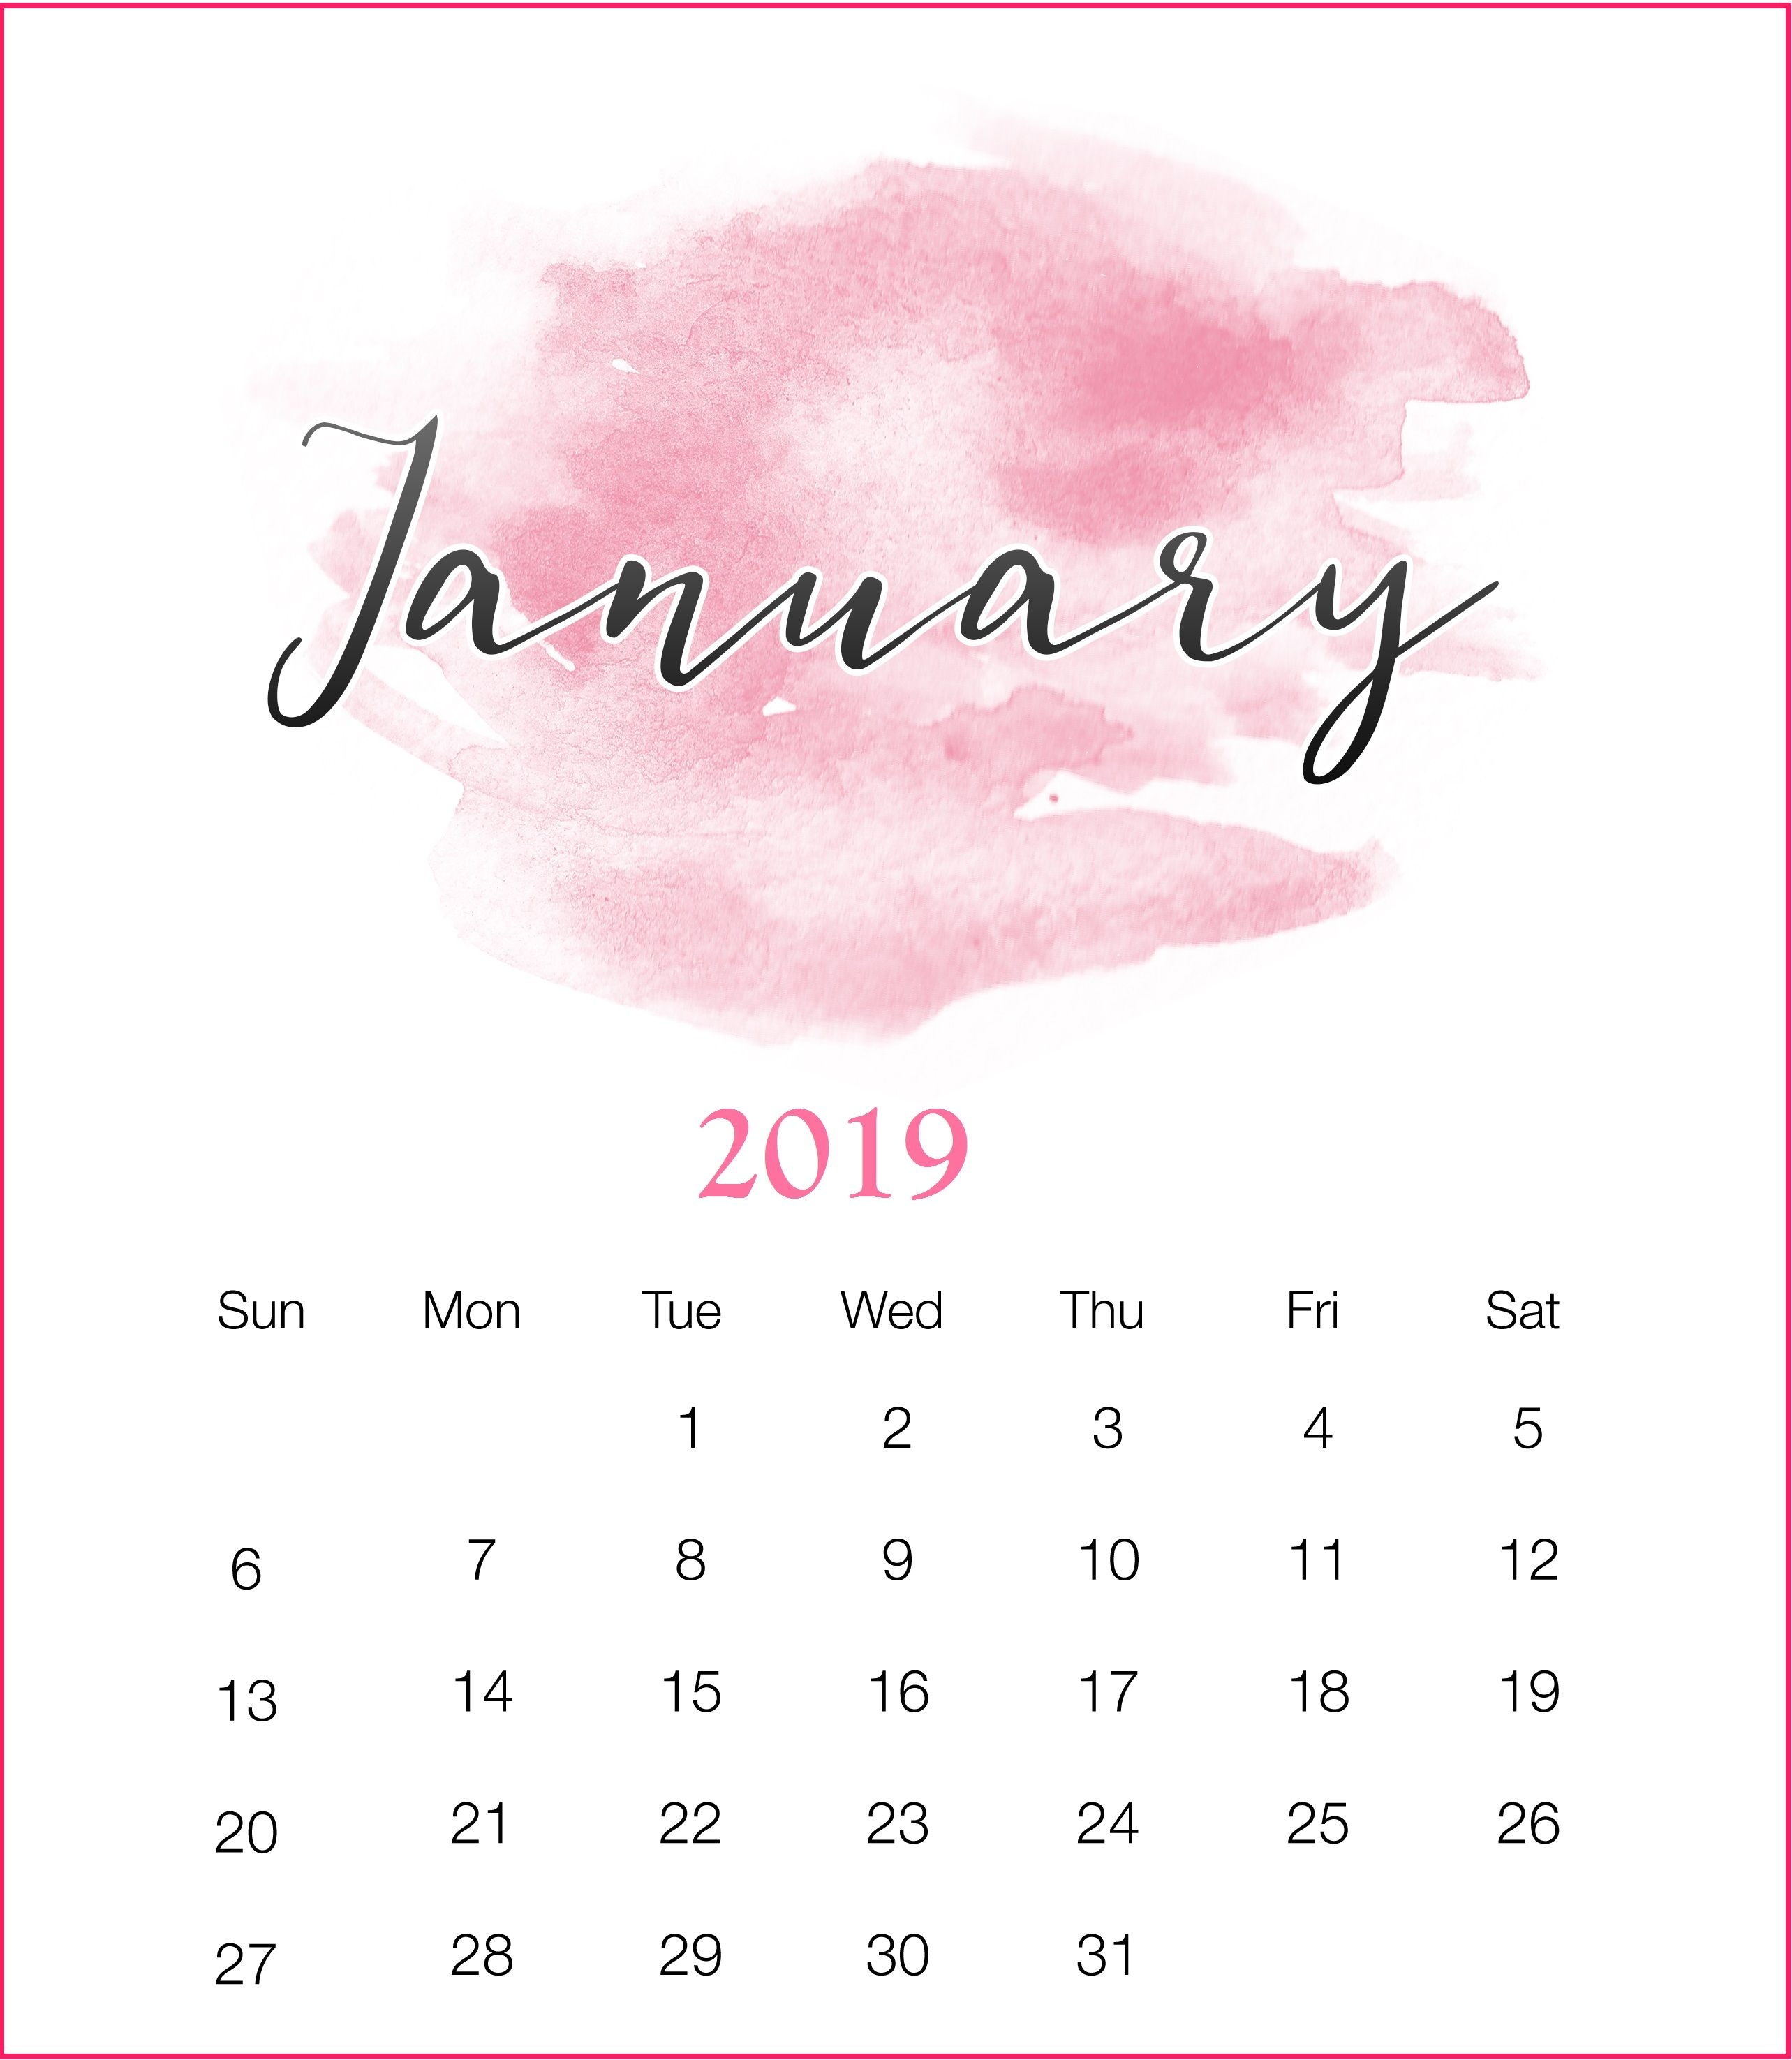 watercolor 2019 january printable calendar watercolor::January 2019 iPhone Calendar